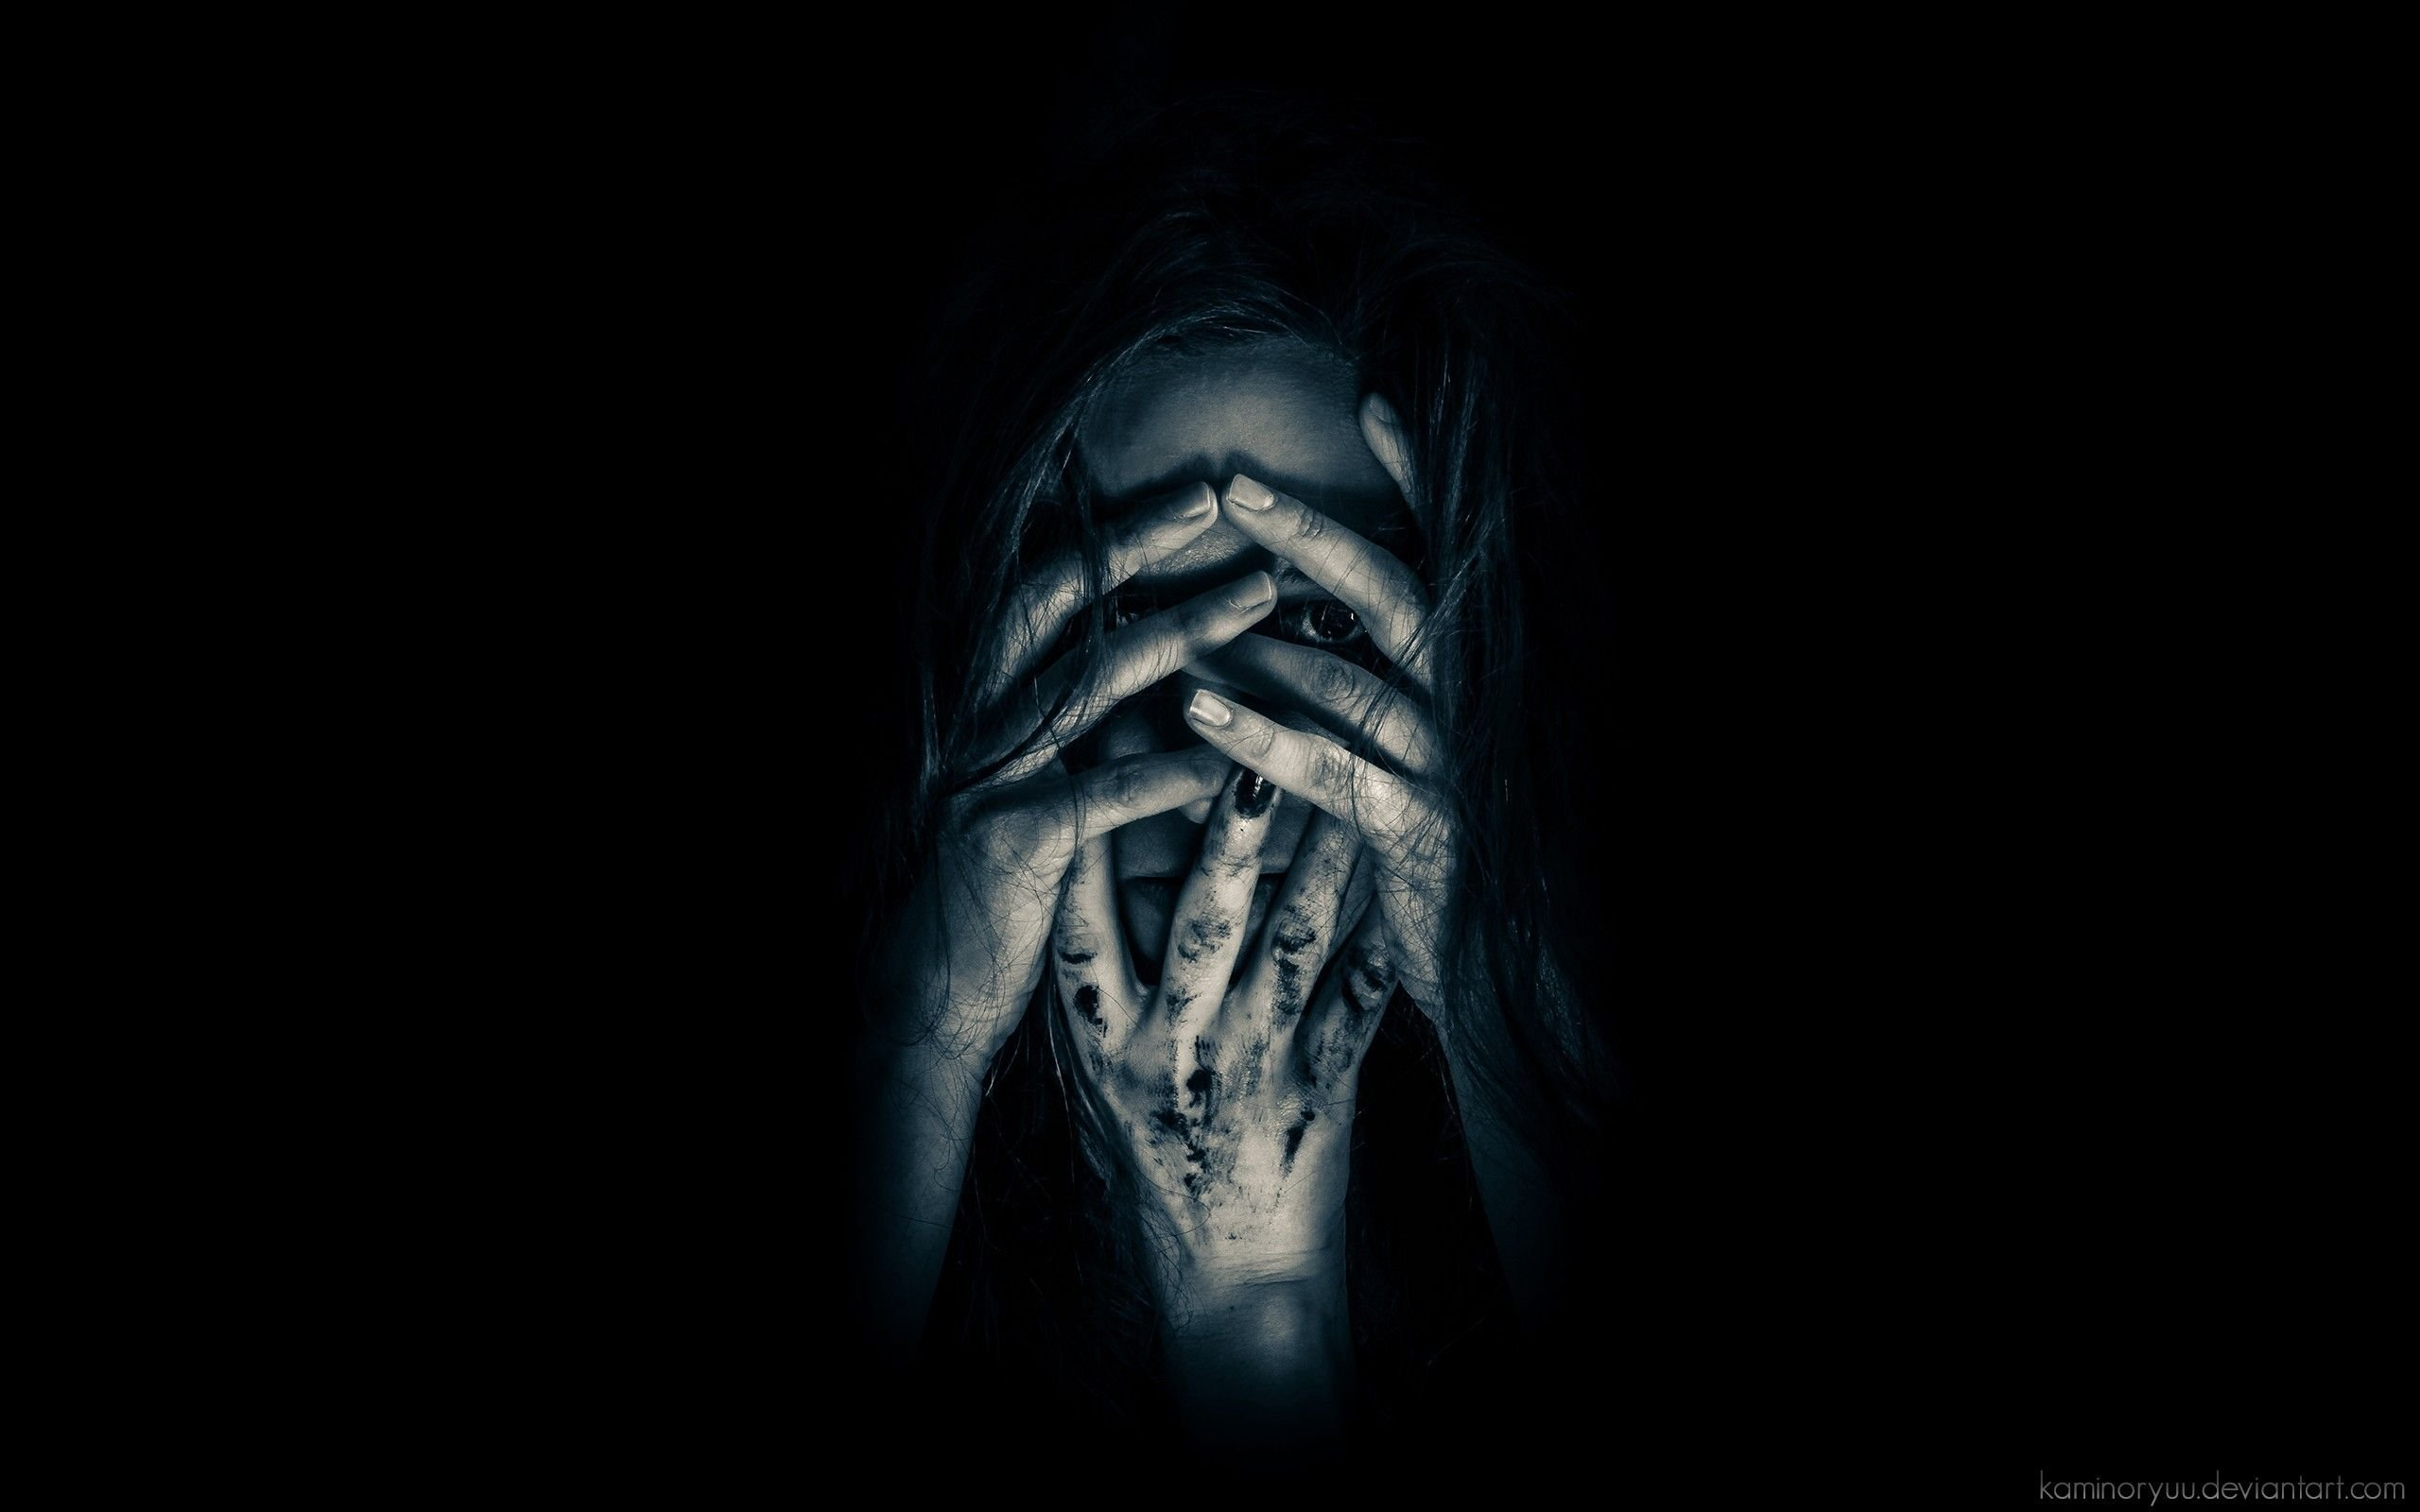 Creepy Dark Wallpapers - Top Free